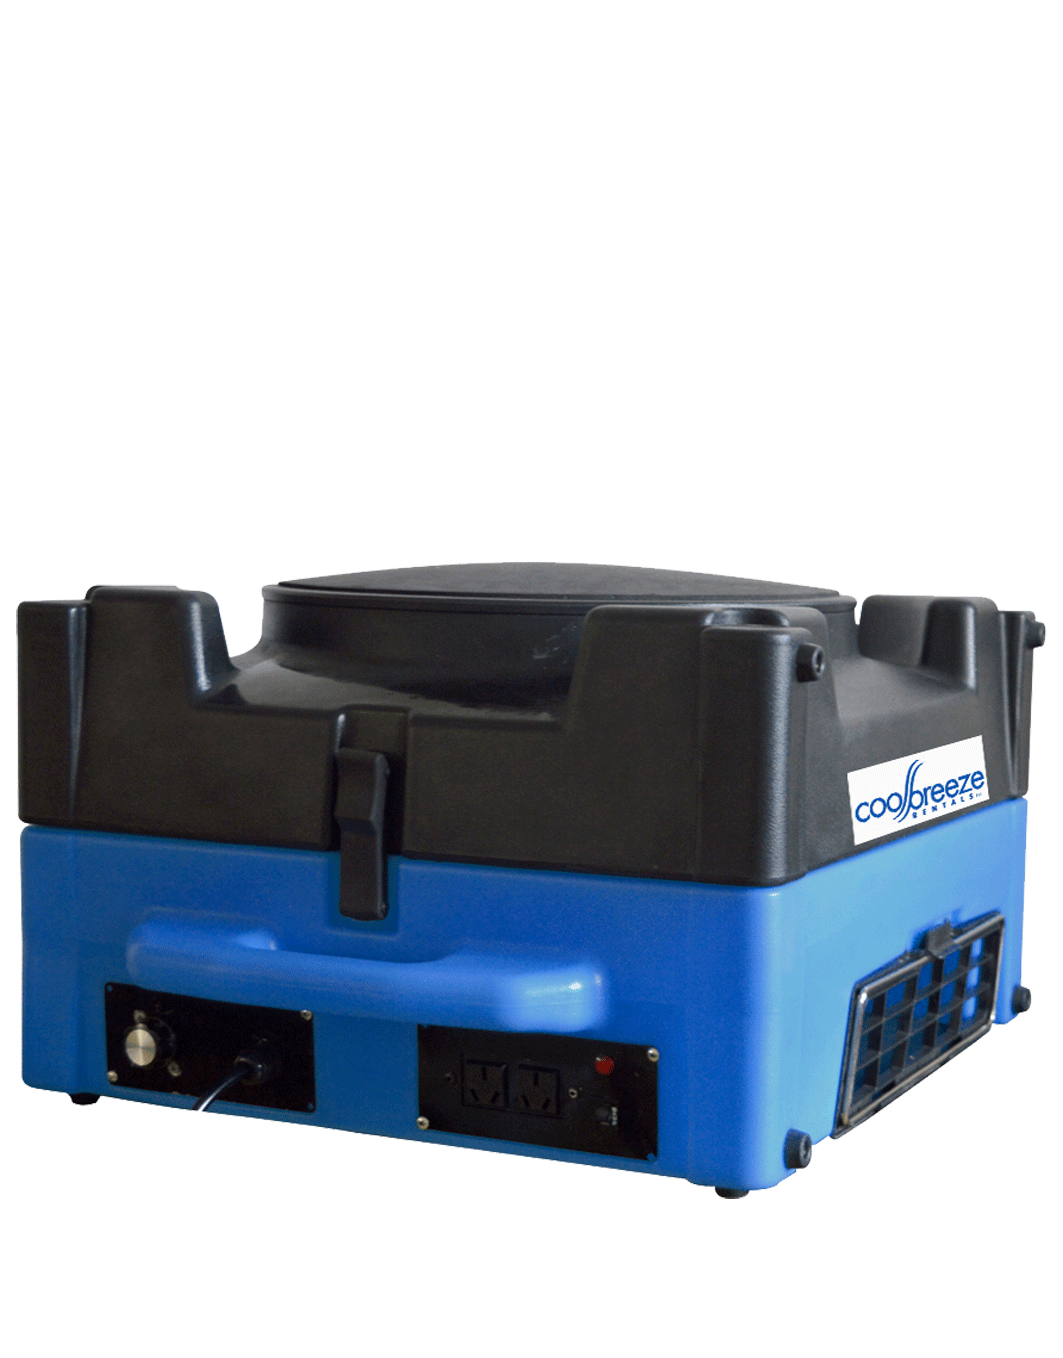 CB1400 Hepa Filtered Air Scrubber